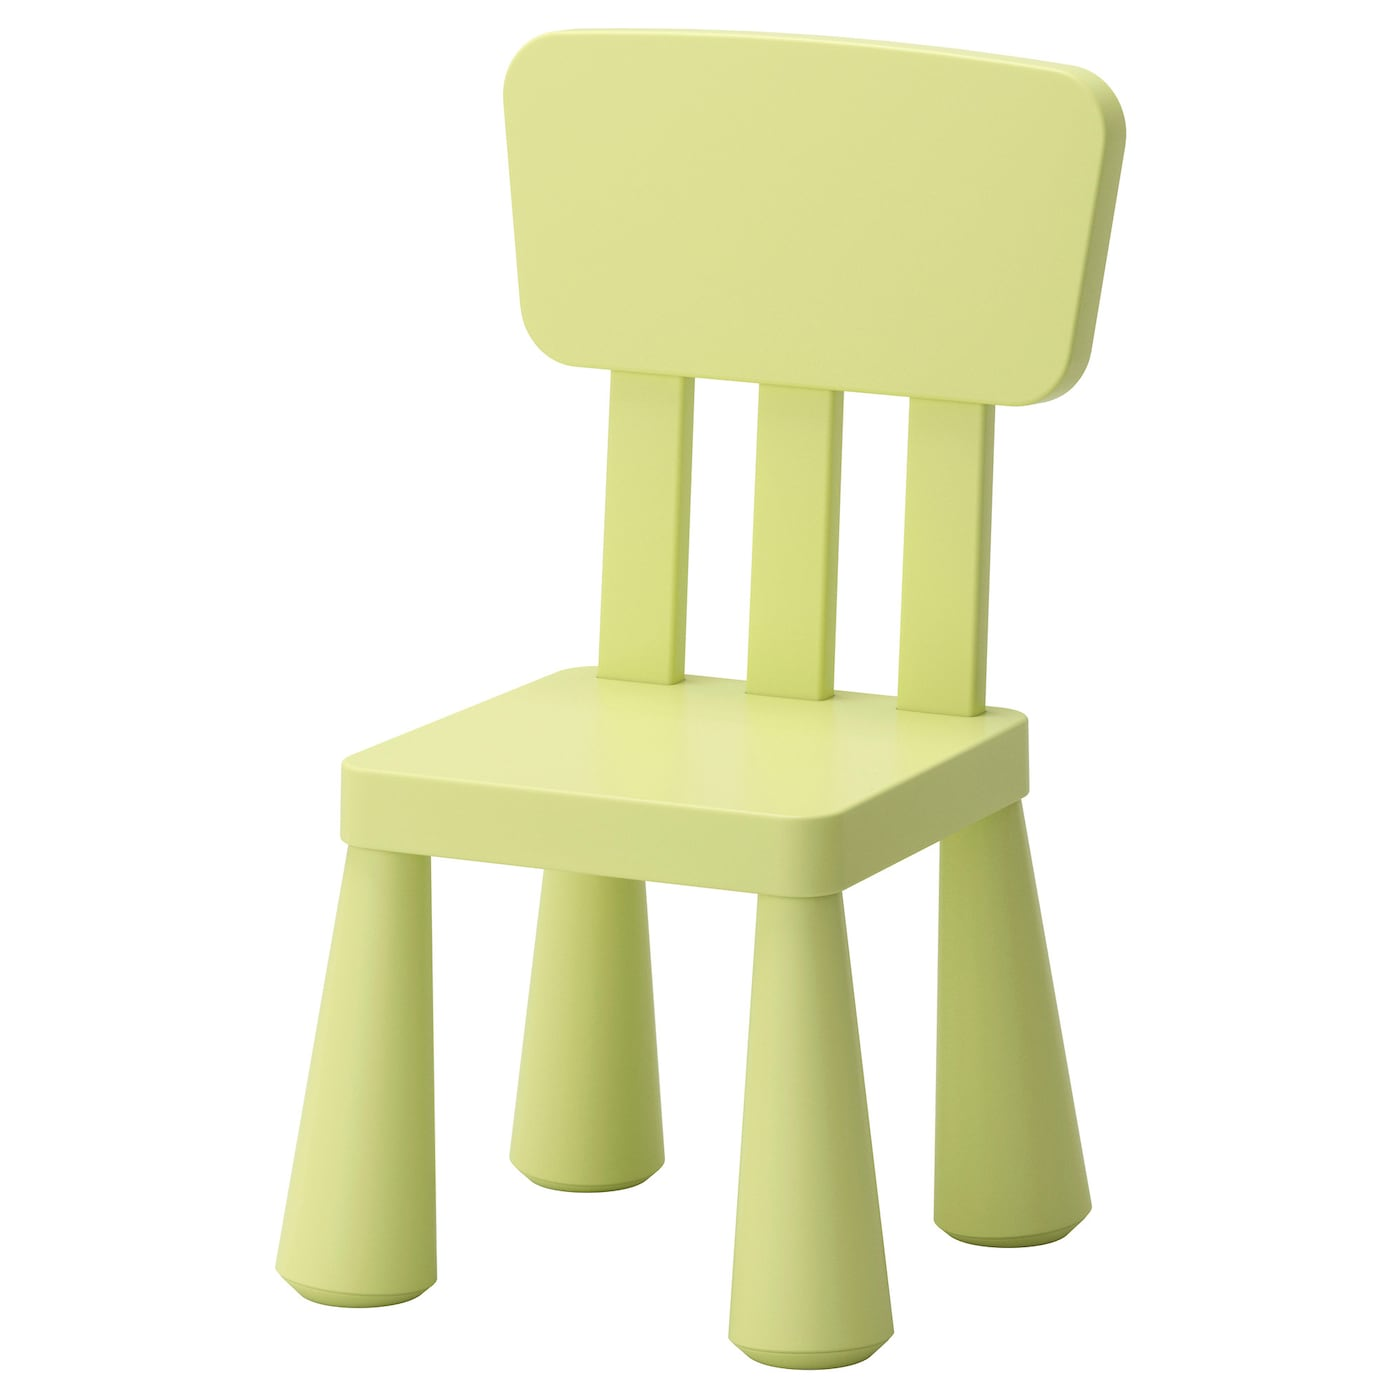 IKEA MAMMUT children's chair Easy to assemble – you just click the components together.